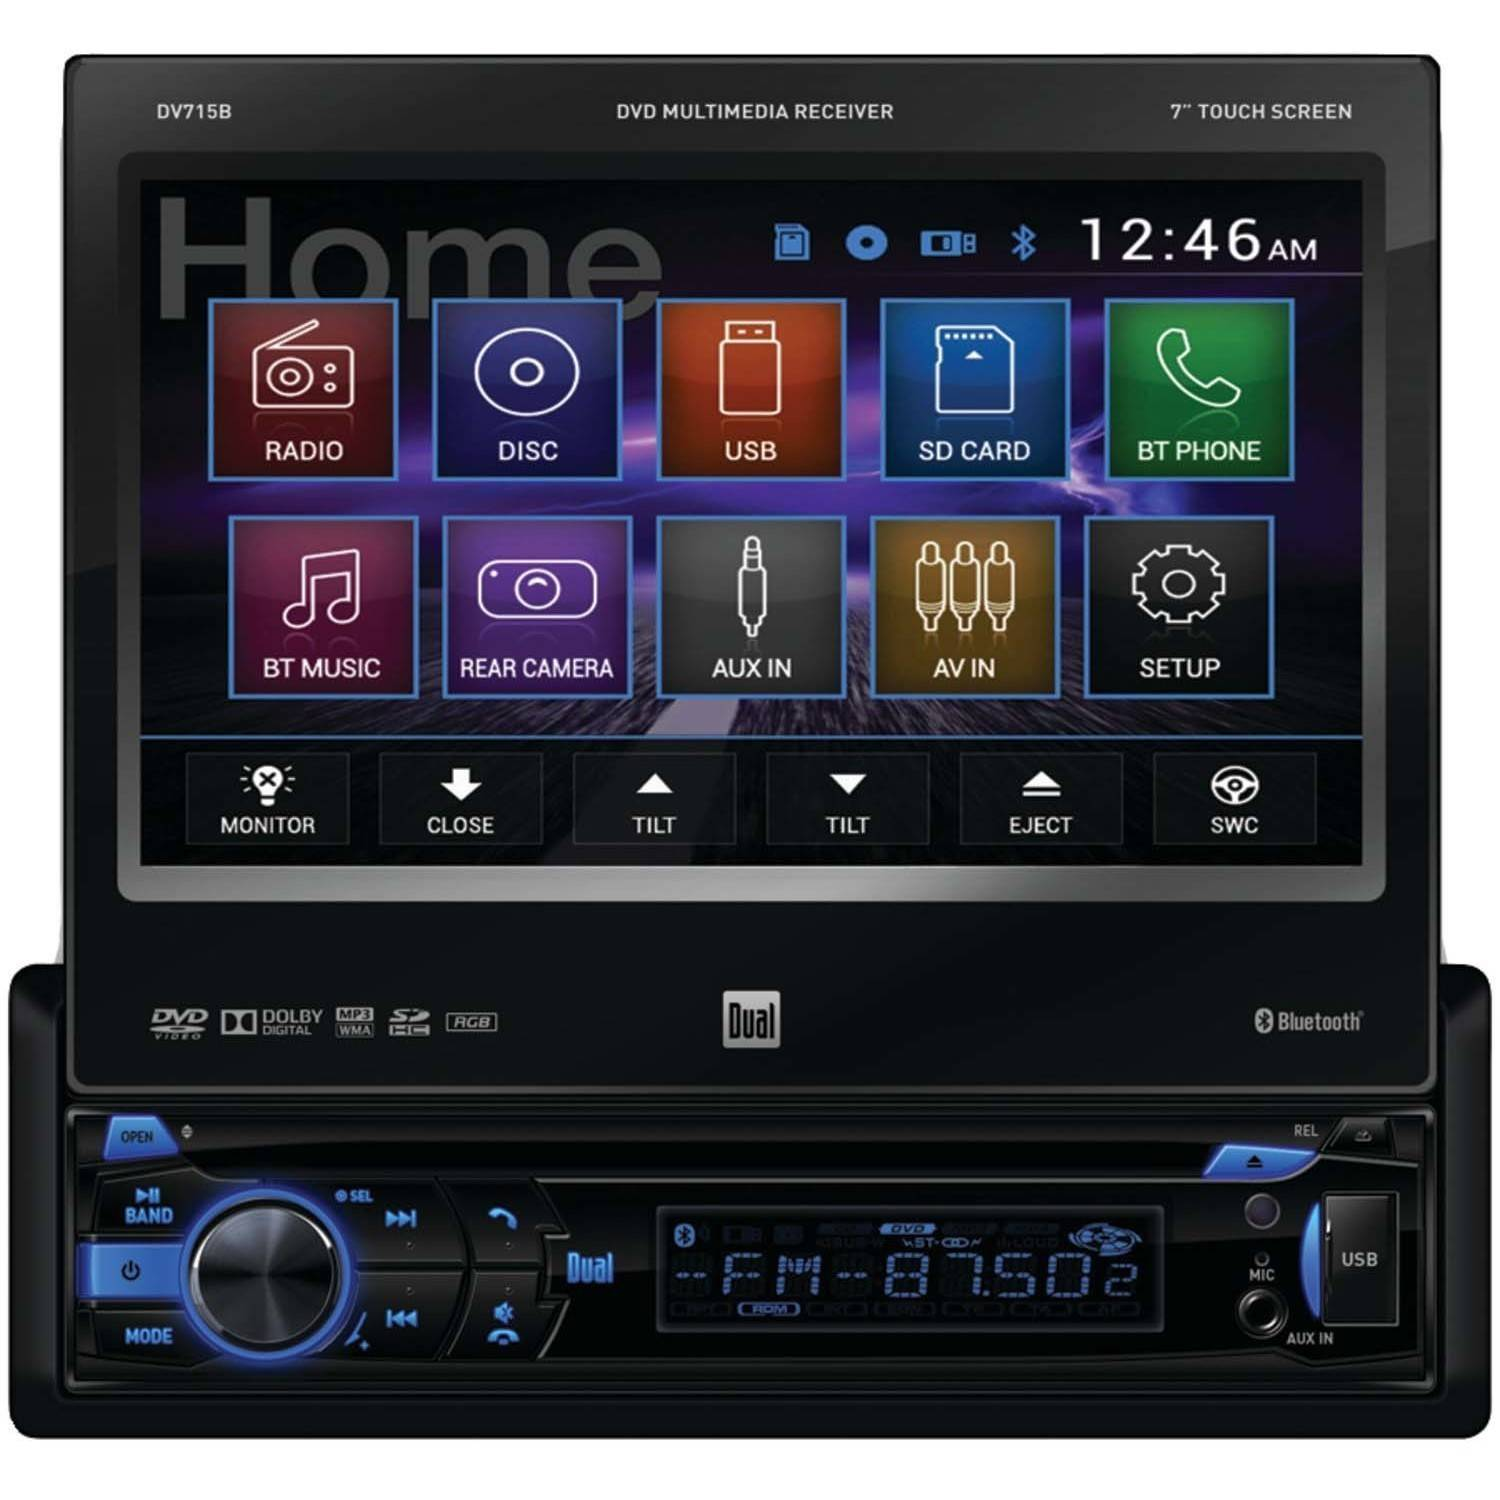 """Dual Electronics DV715B 7"""" Single-DIN In-Dash DVD Receiver with Motorized Touchscreen and Built-in Bluetooth"""